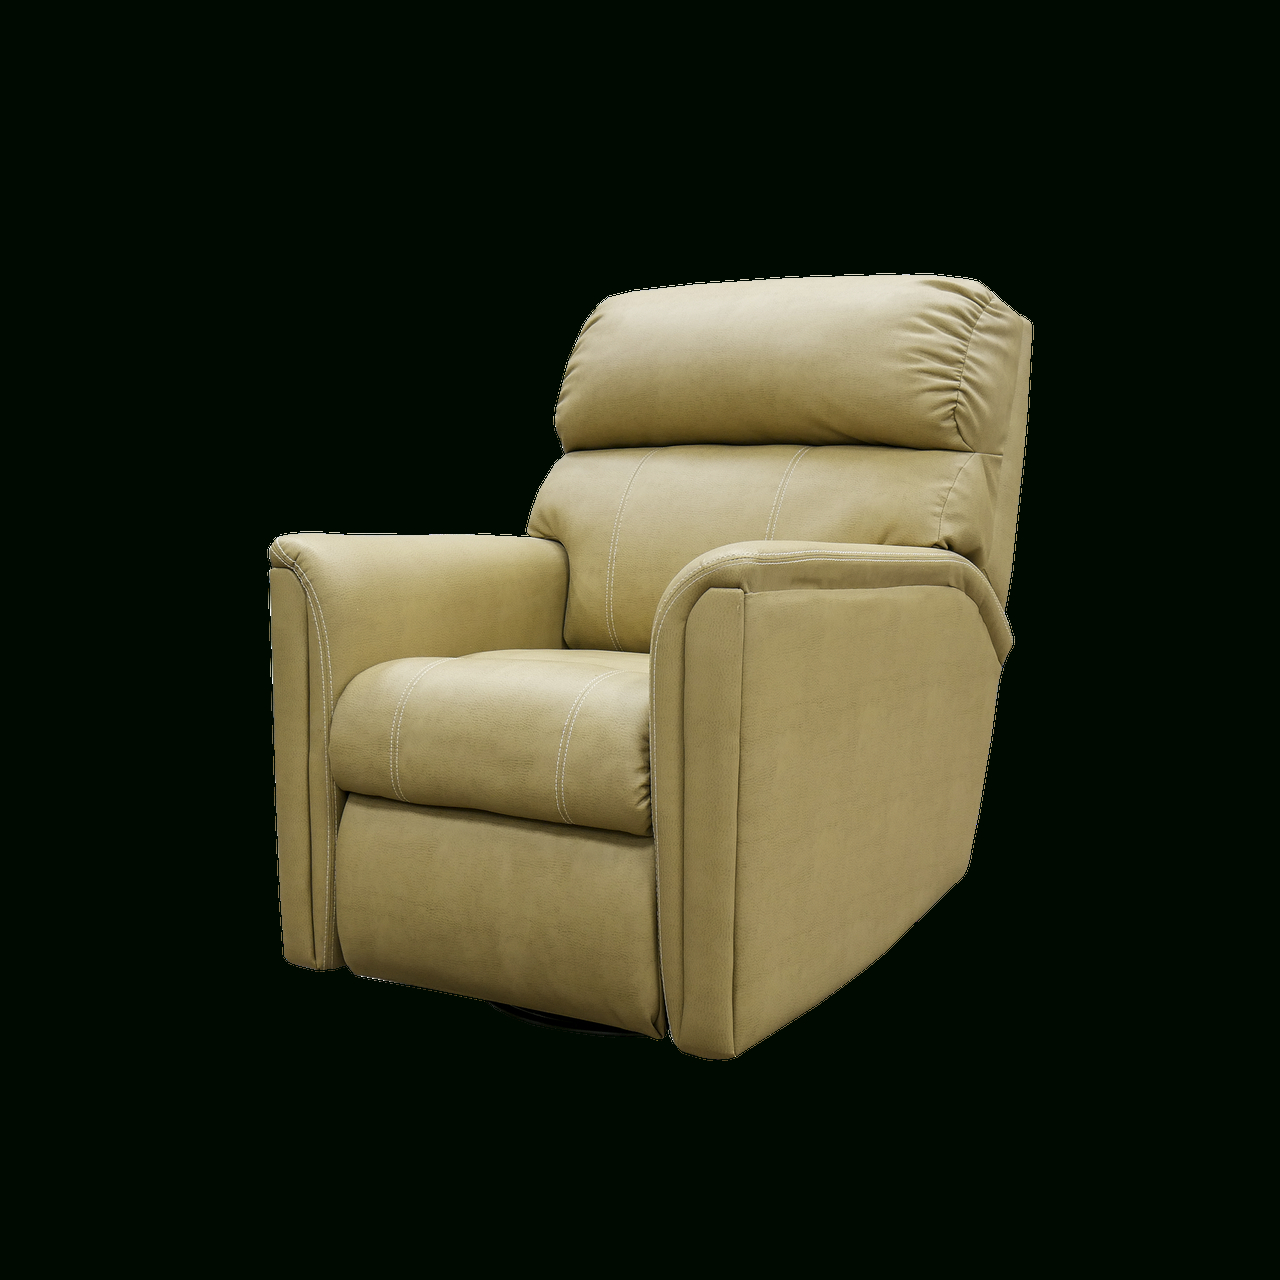 "Rv Rocker Glider Swivel Recliner Strathmore 30.5"" Wide 